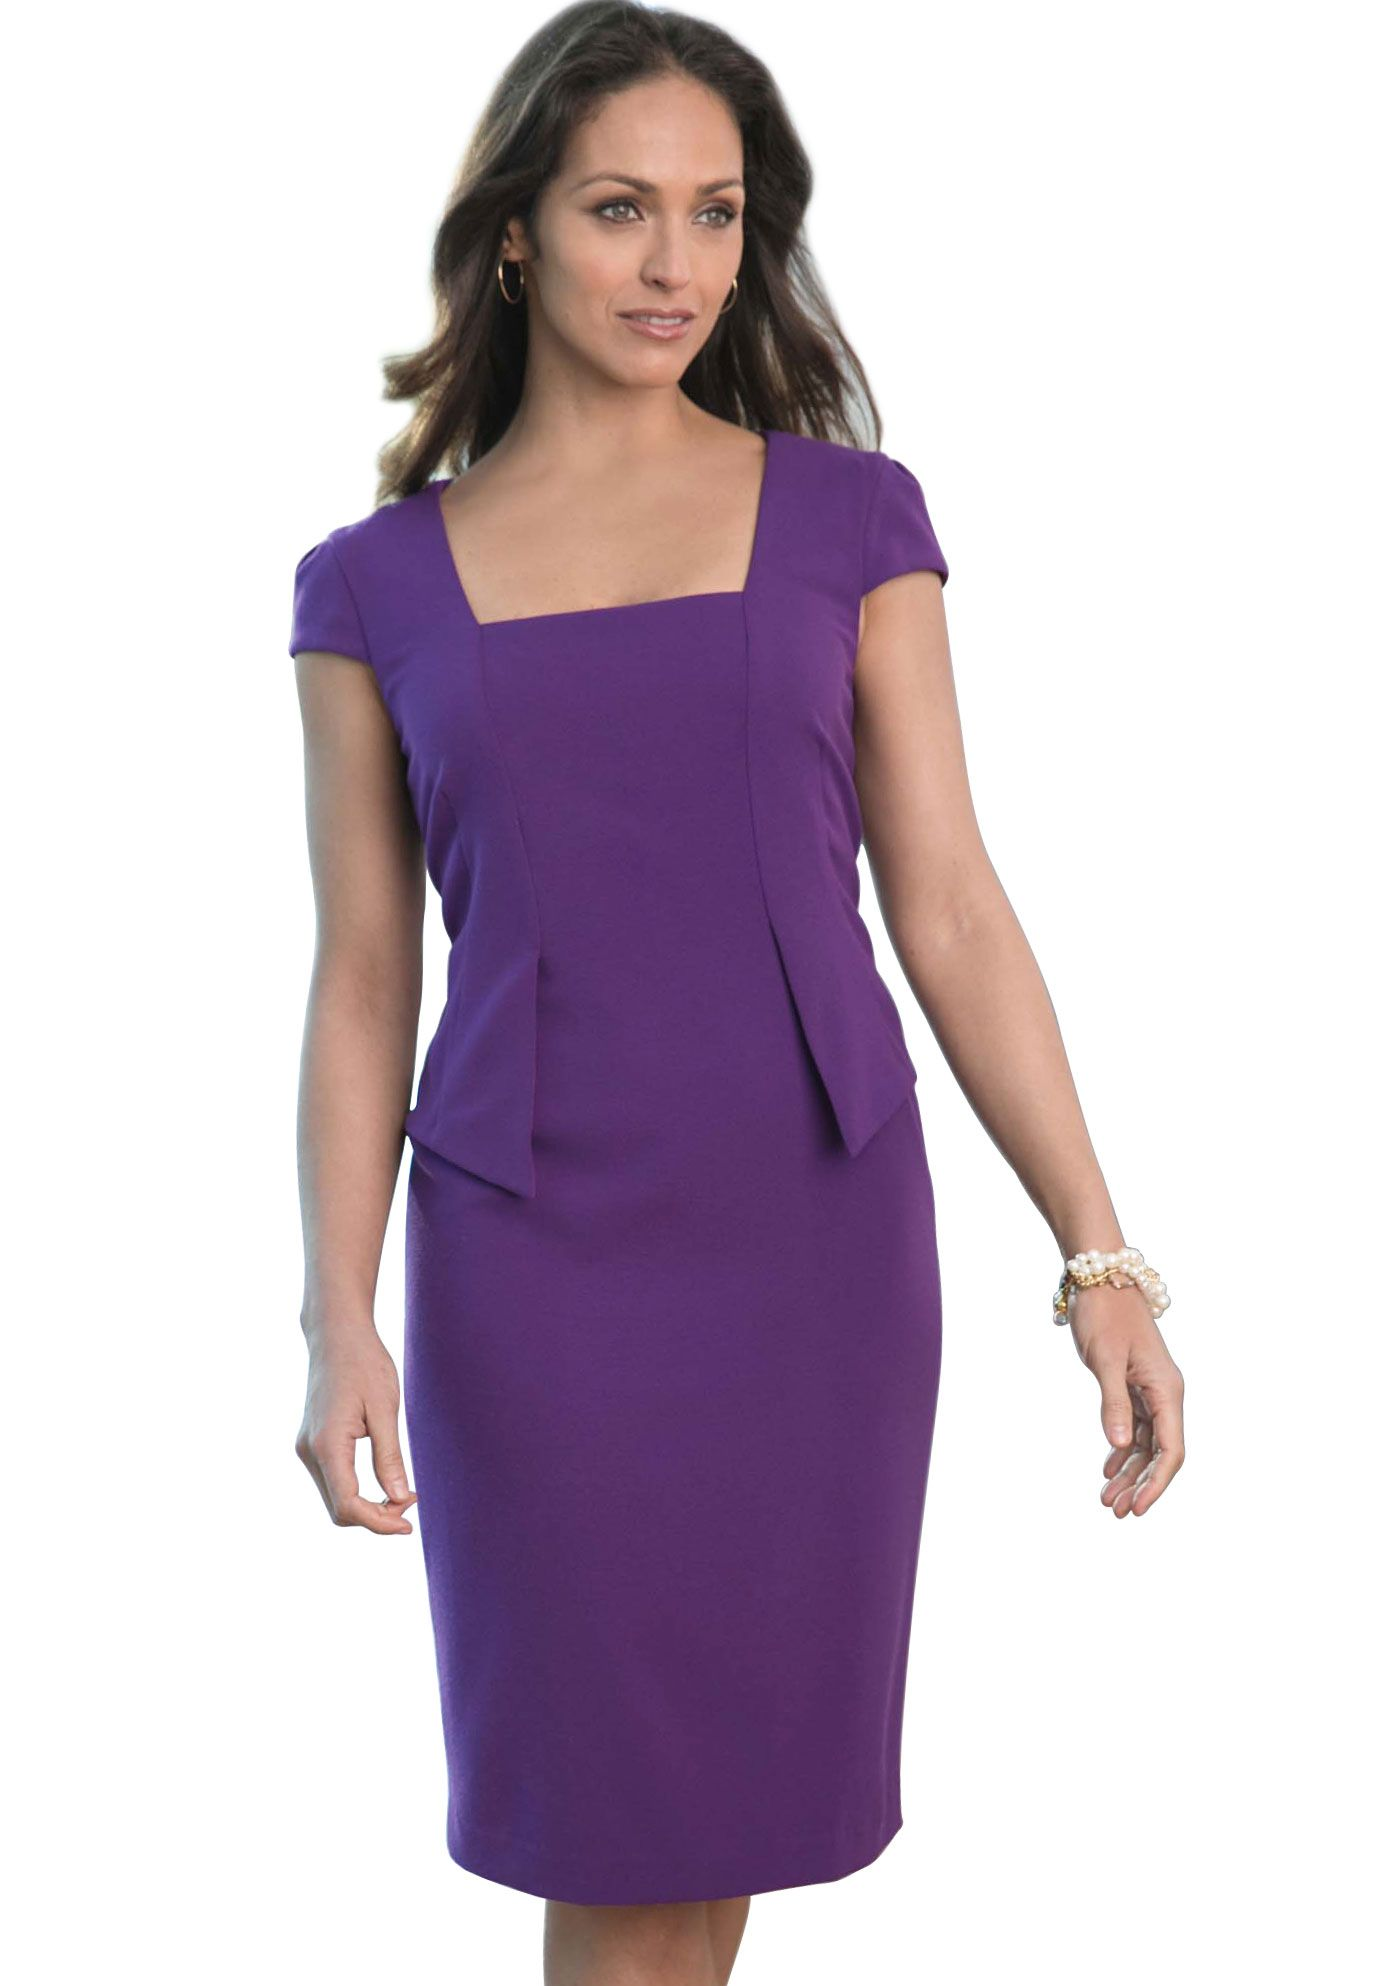 Crepe Peplum Sheath | Plus Size Work Dresses | Jessica London ...